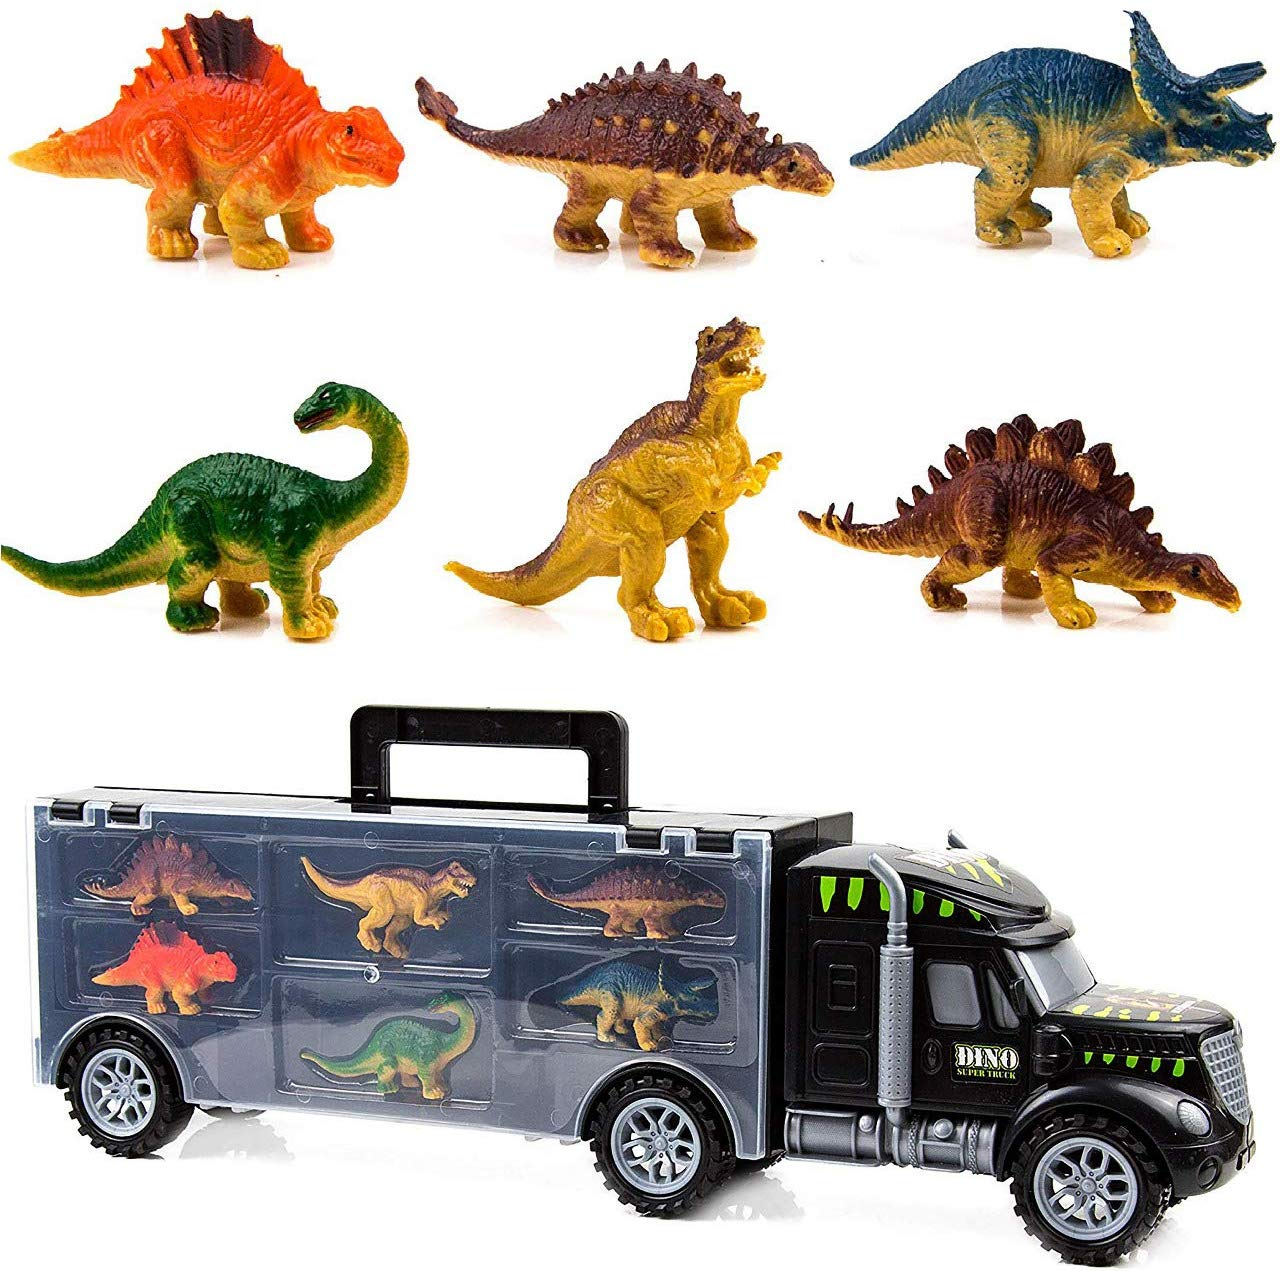 Toysery Monster Truck Dinosaur Toys Educational Kids Toys For 3 Year Old Boys And Girls 6 Pc Jurassic Park Toys For Kids Durable Transport Carrier Dinosaur Tractor Toys Set Walmart Com Walmart Com